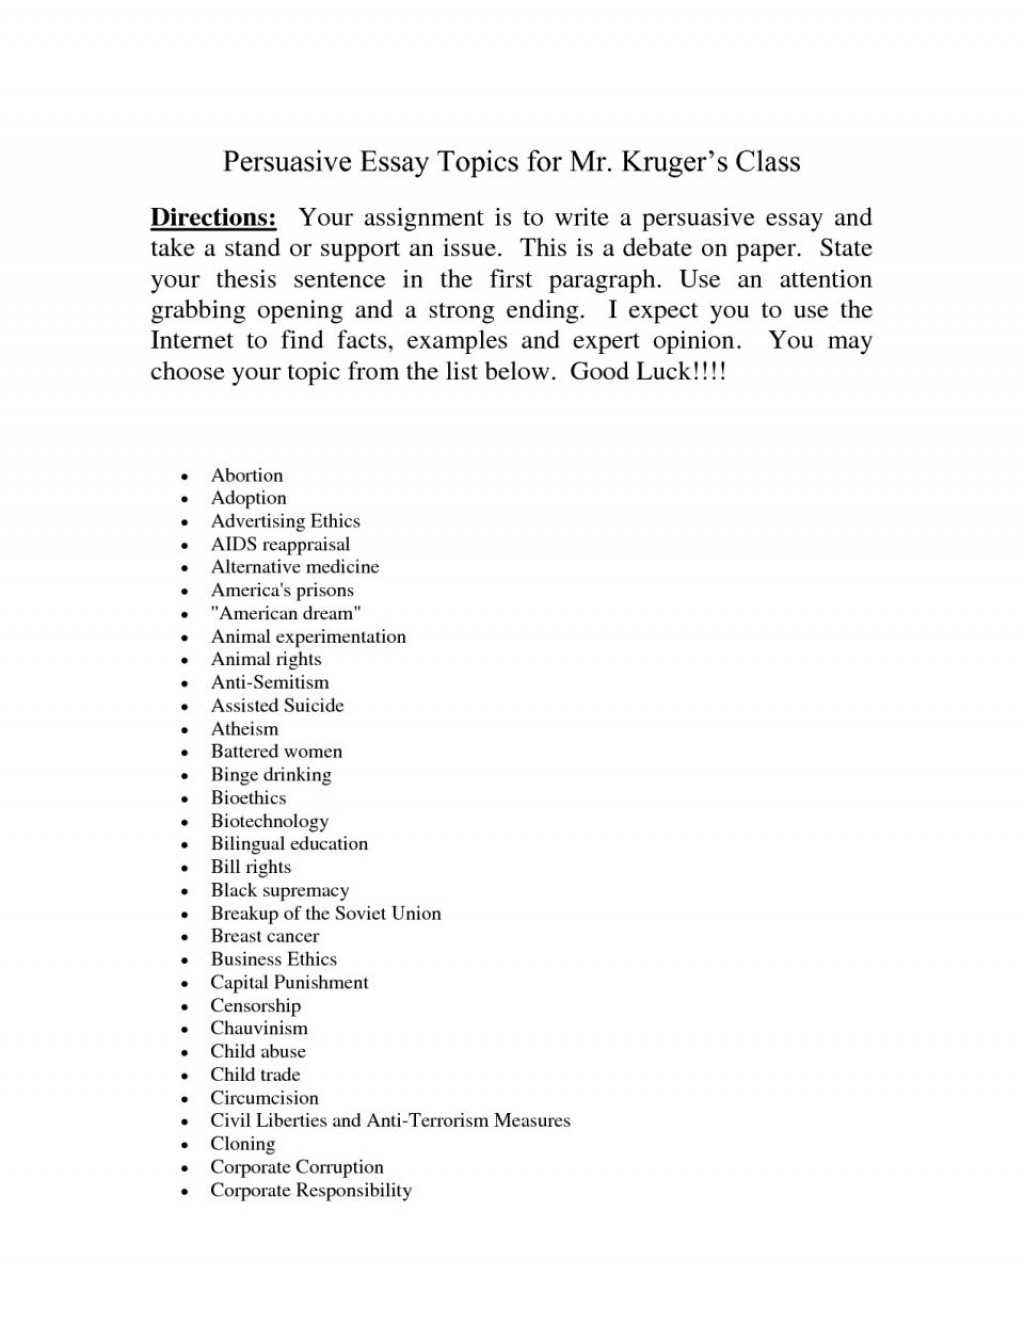 007 Topics To Write About In Research Paper Topic For Essay Barca Fontanacountryinn Within Good Persuasive Narrative Abo Easy Personal Shocking A Health On Large